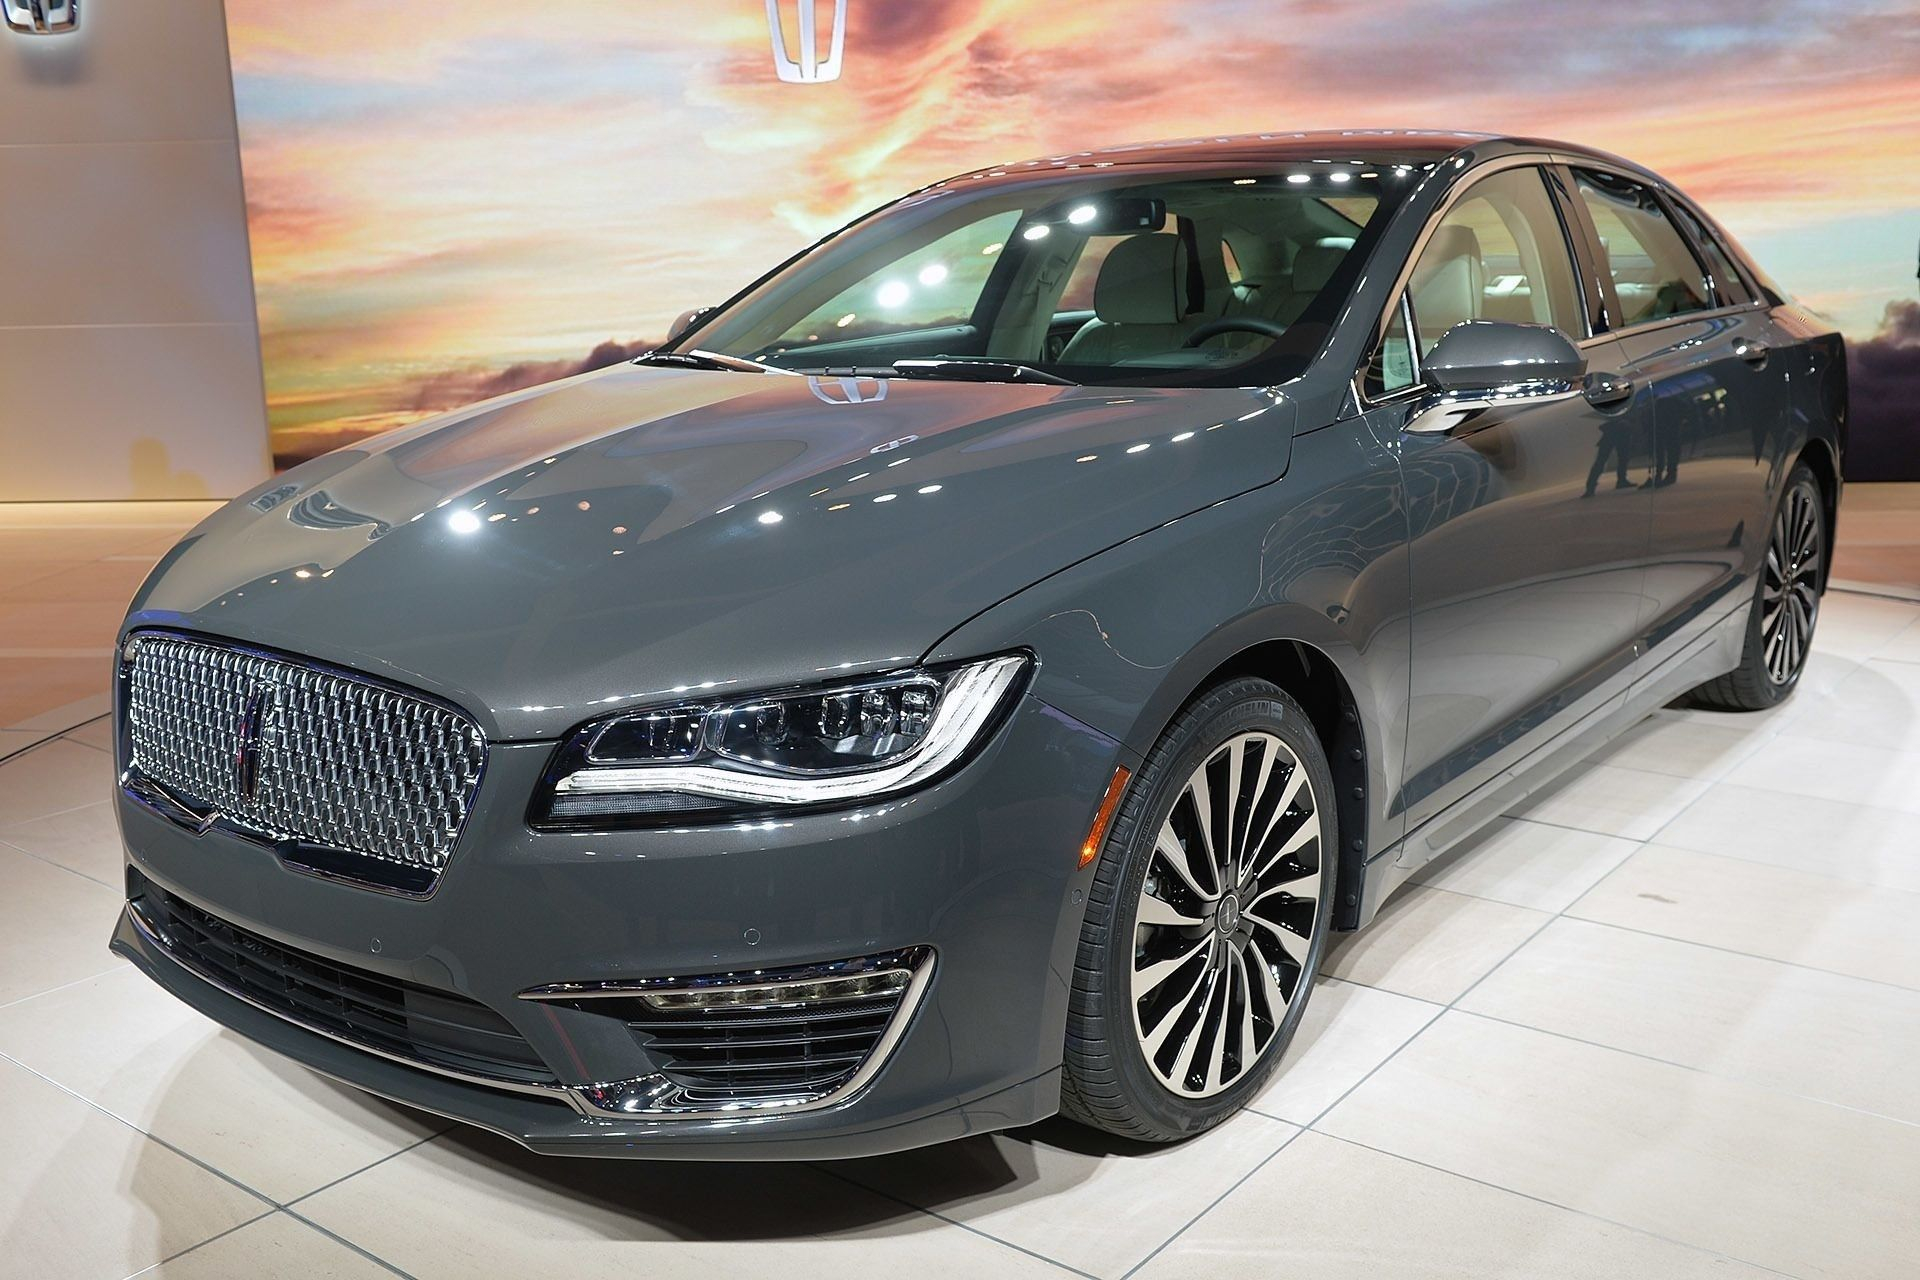 44 A 2020 Spy Shots Lincoln Mkz Sedan Exterior